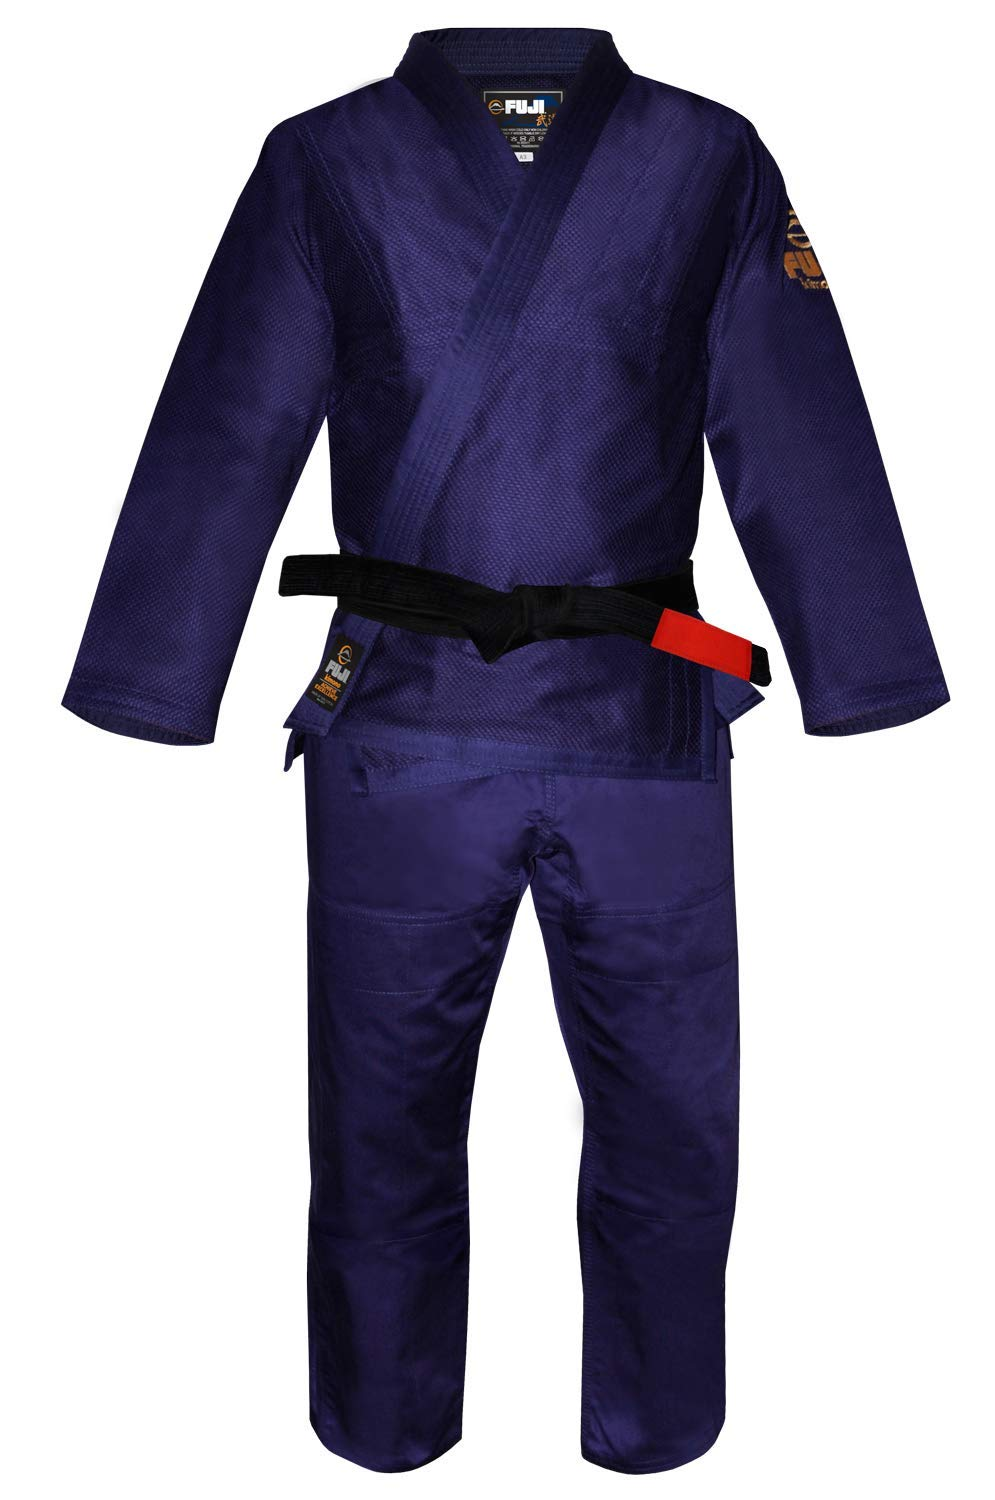 FUJI BJJ Uniform 7000-A10-PARENT